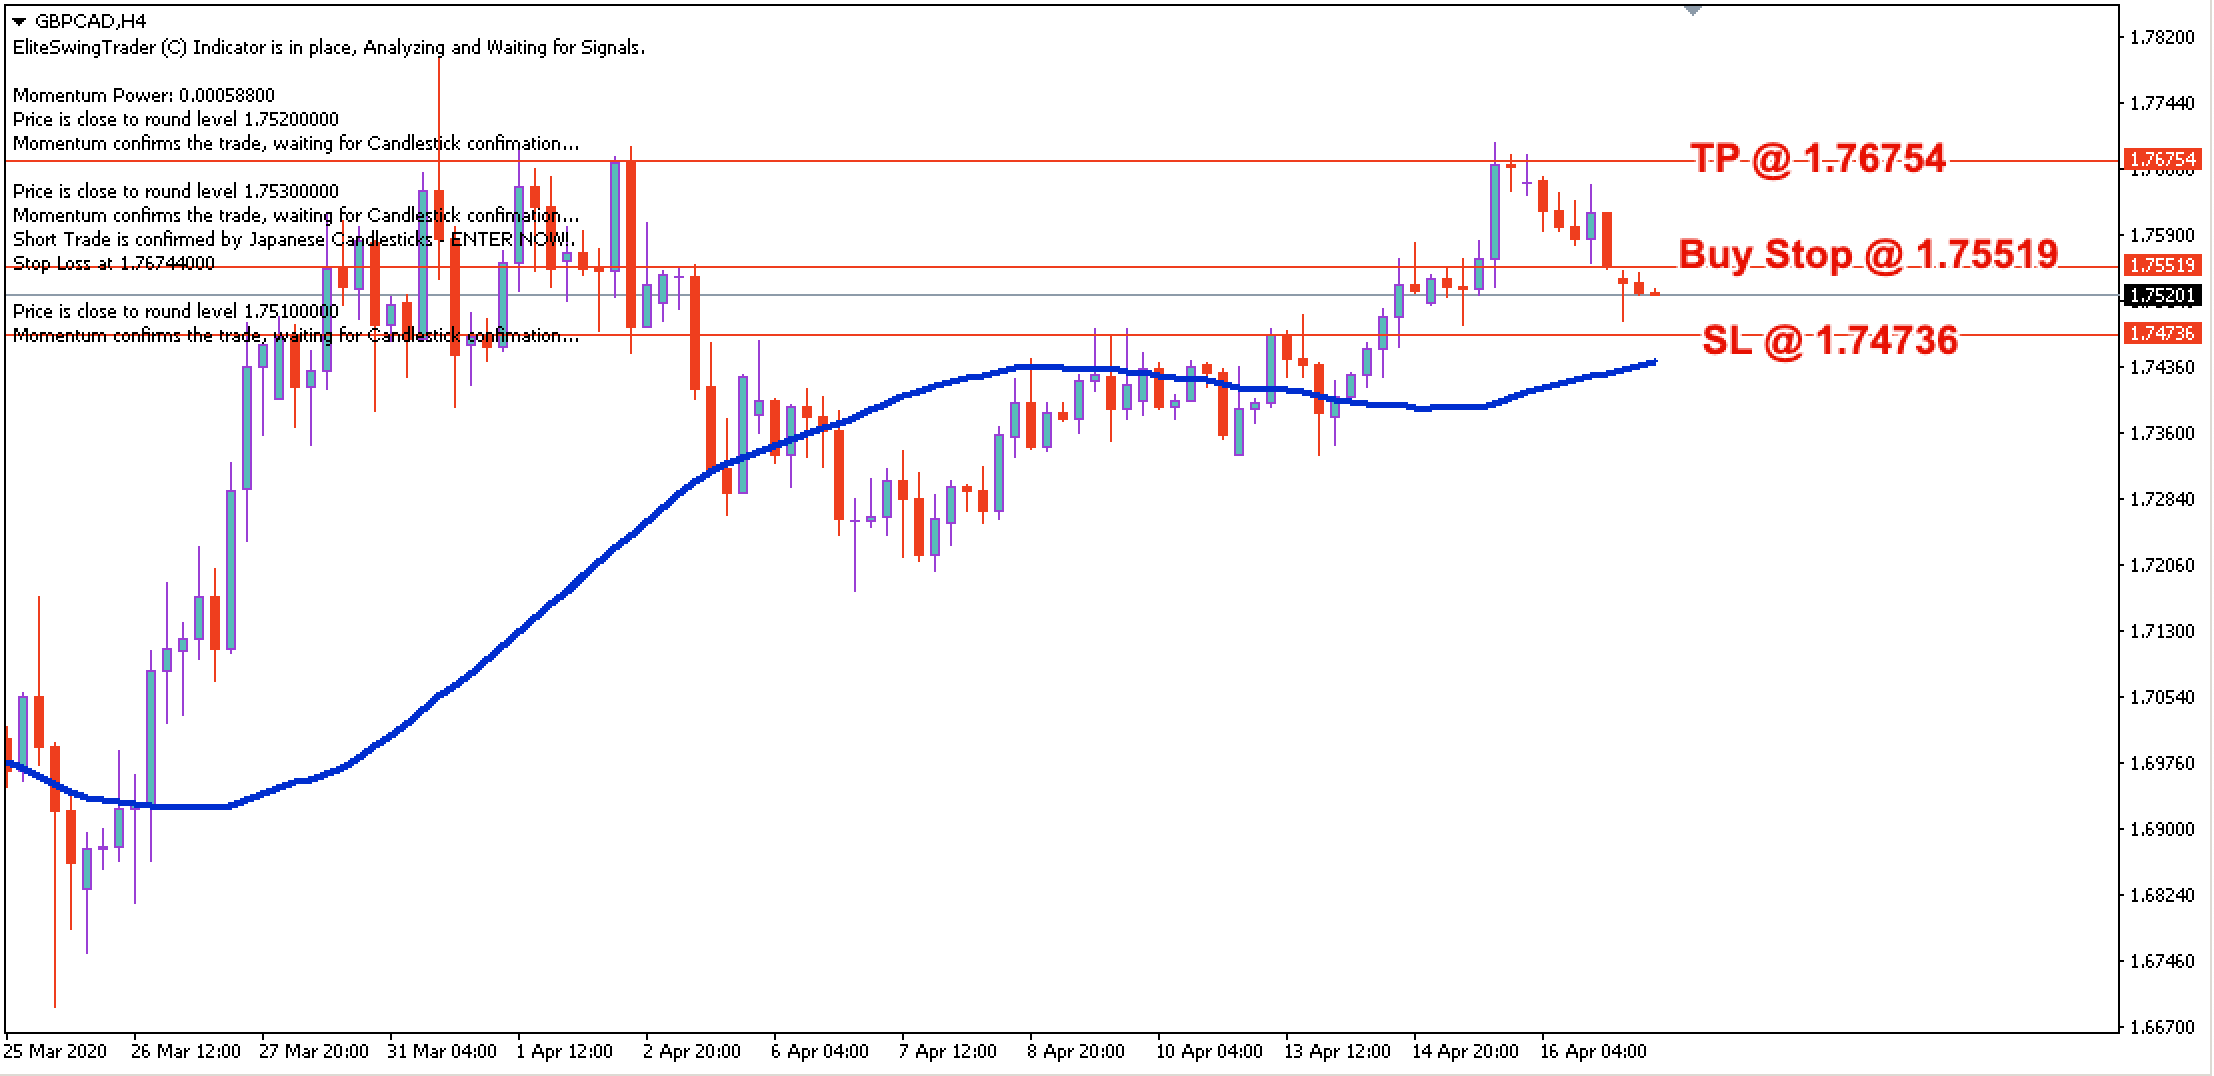 GBP/CAD Daily Price Forecast – 17th April 2020